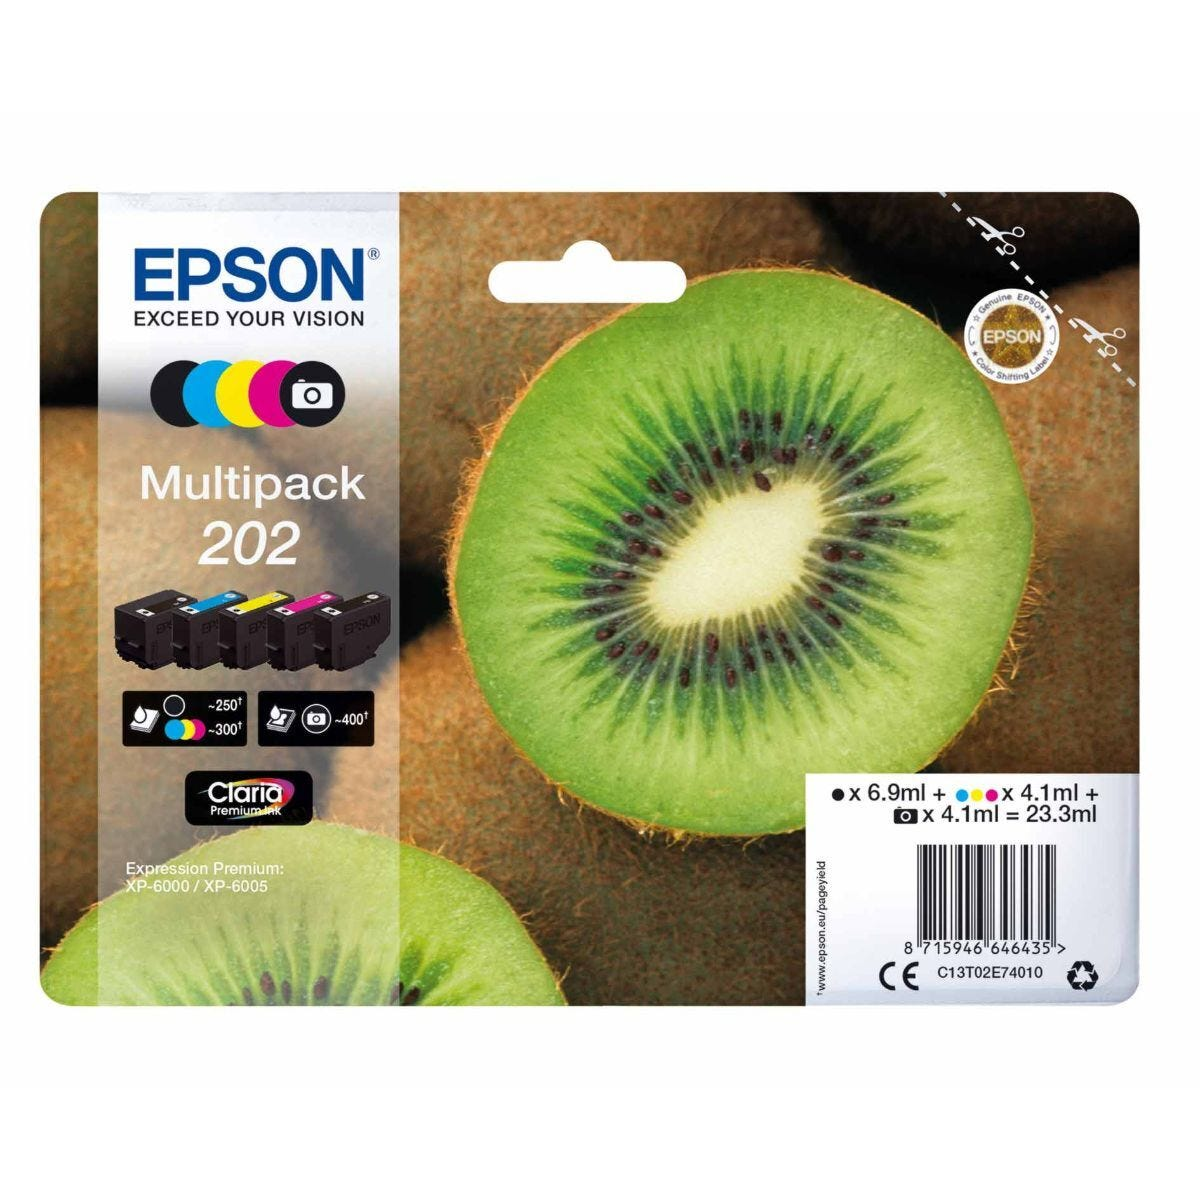 Epson 202 Kiwi Ink Black Multipack